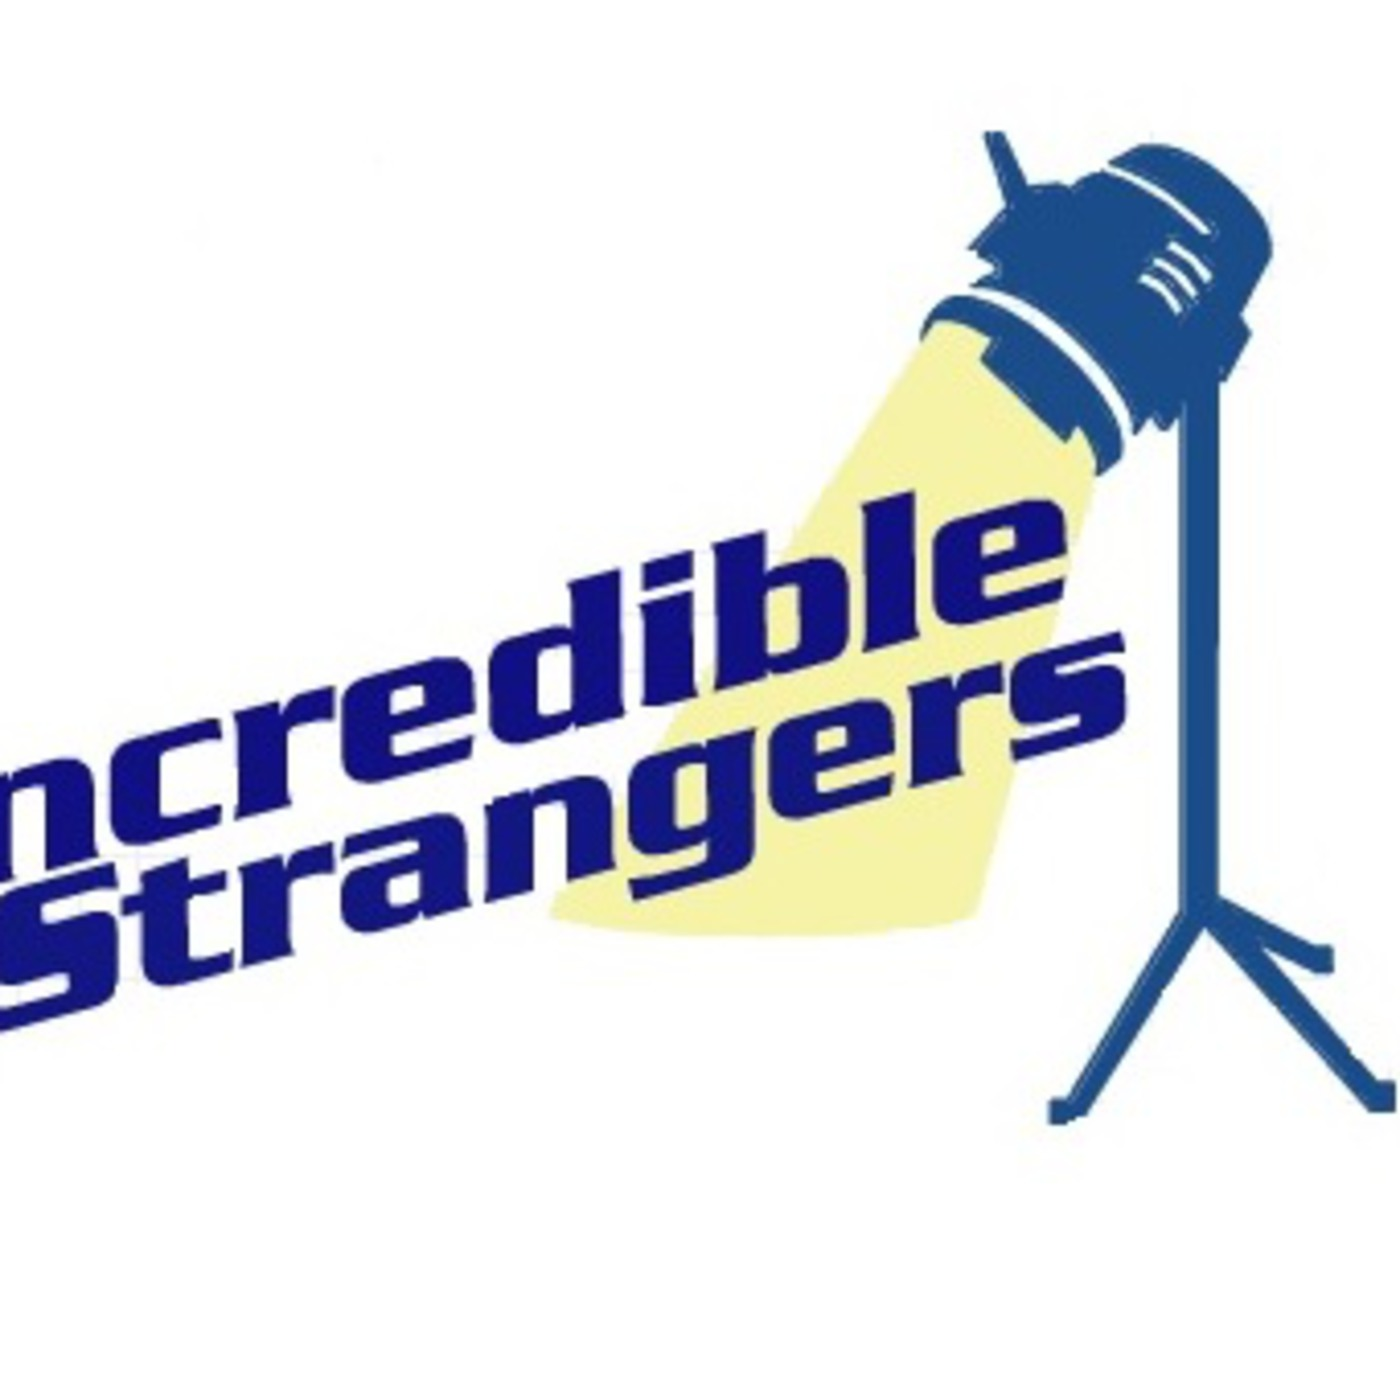 Incredible Strangers' Podcast